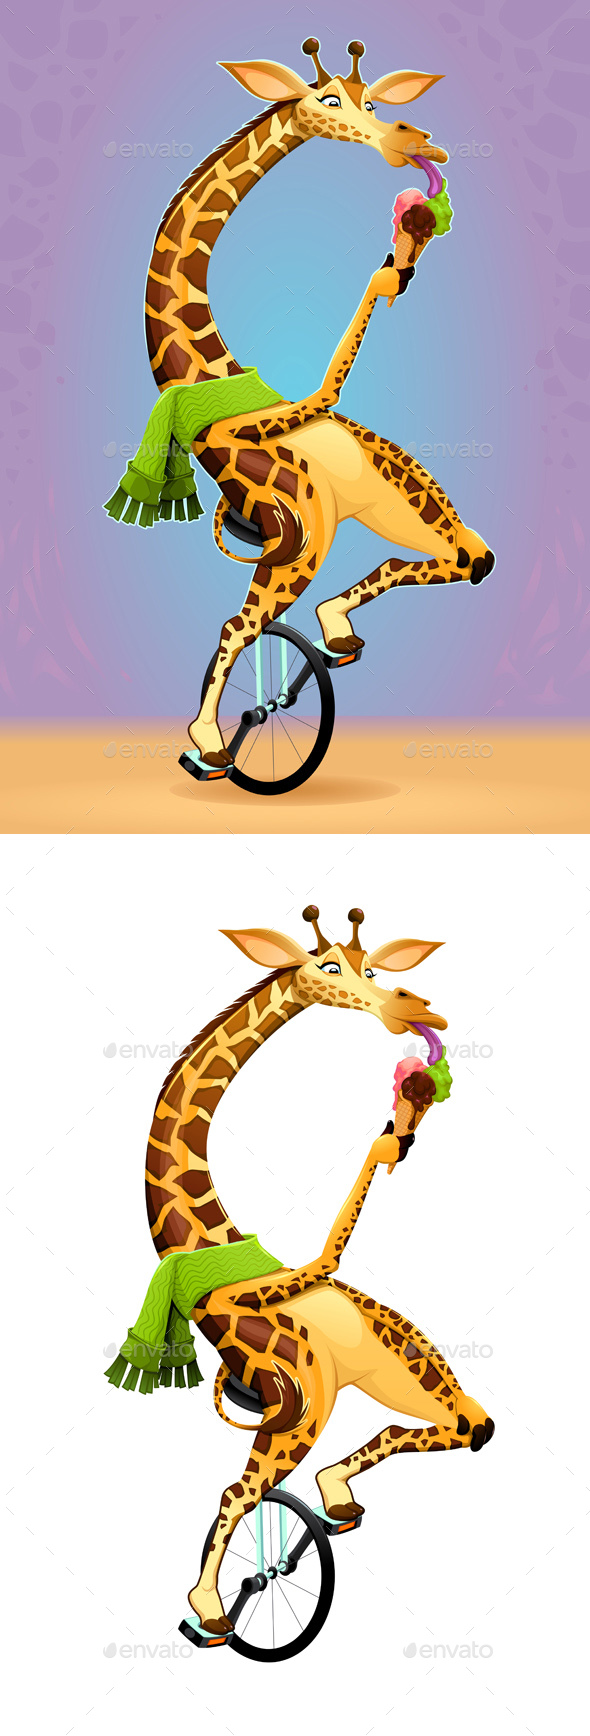 Giraffe on an Unicycle by ddraw | GraphicRiver